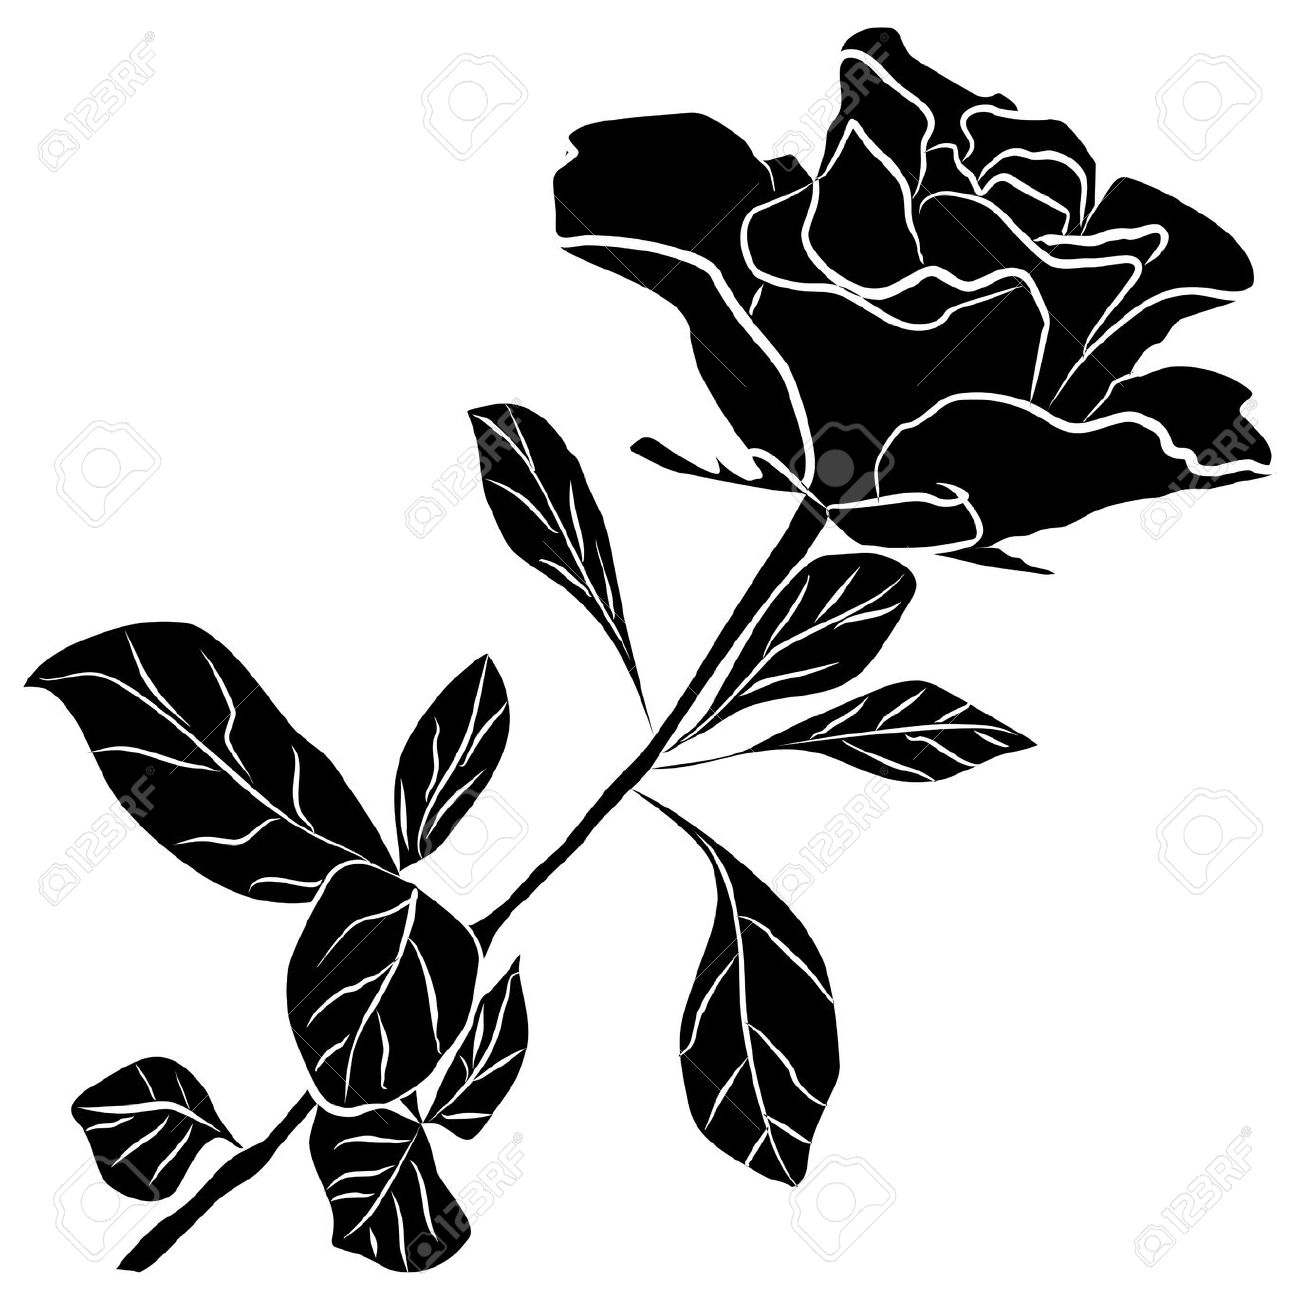 Rose silhouette clipart - Clipground